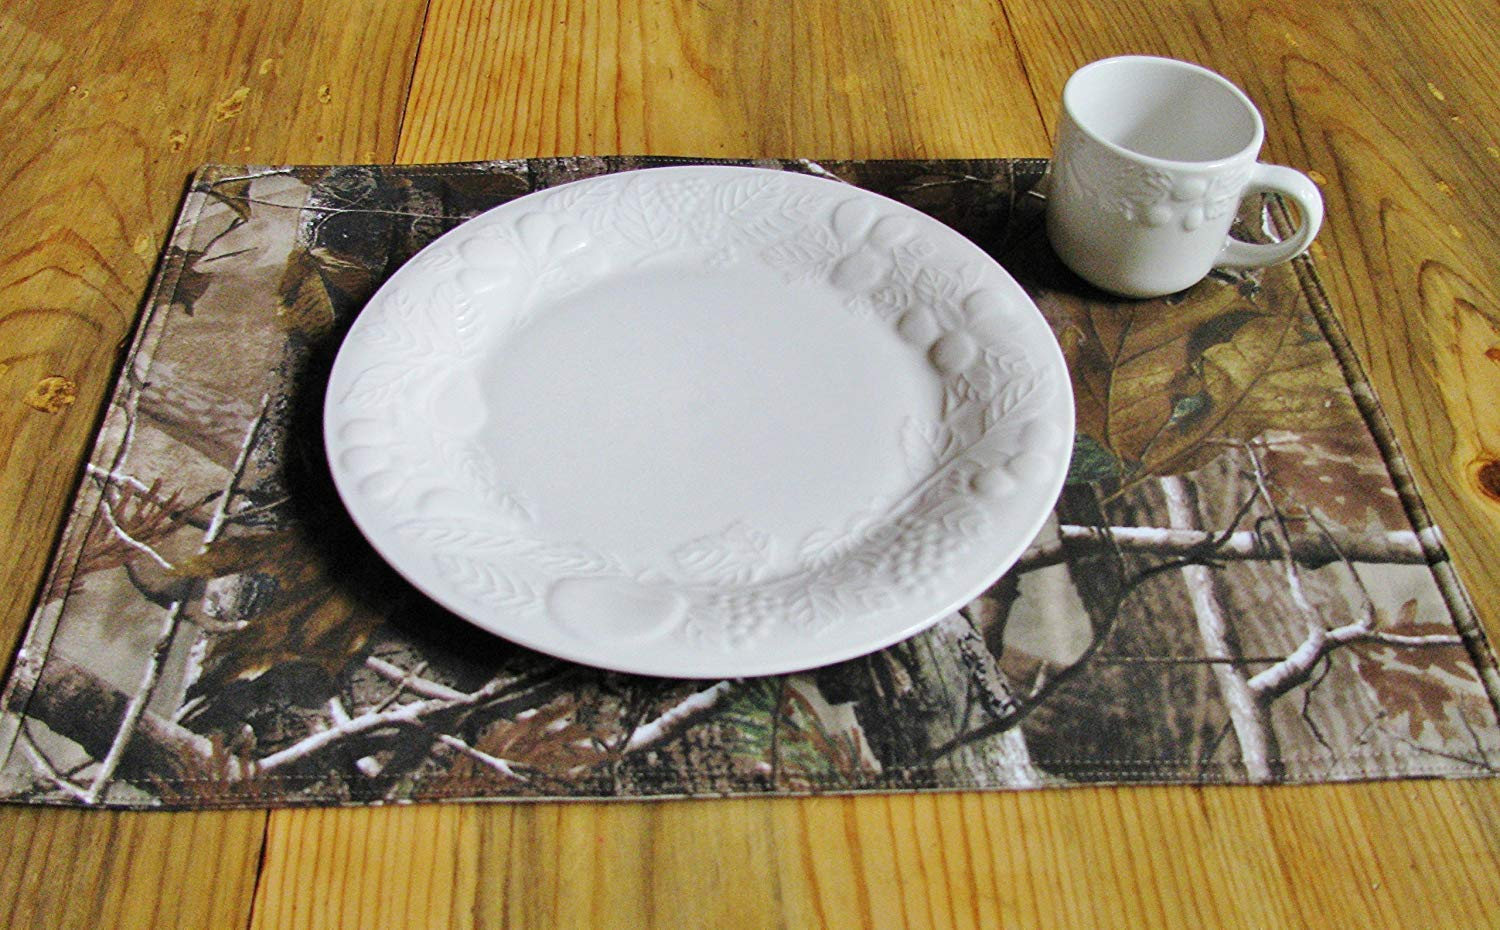 tree camo placemats individually handmade table accent placemat white washed wood end tables cool side jcpenney rugs clearance cast aluminum ikea small square round glass dining